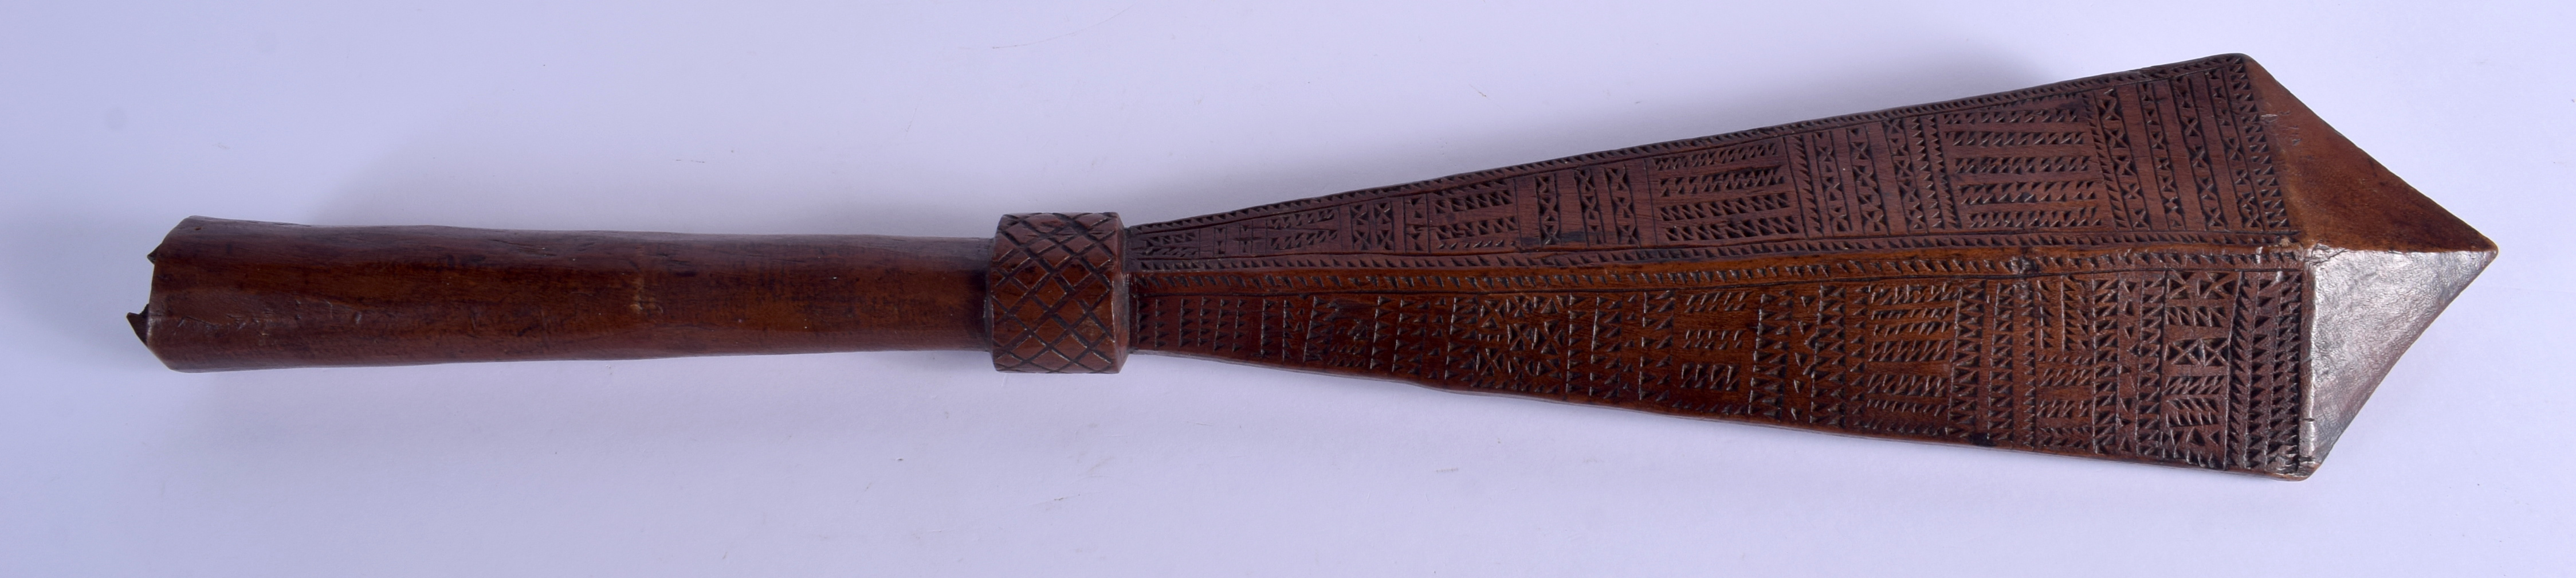 A 19TH CENTURY TONGAN SAMOAN CARVED TRIBAL CLUB decorated with geometric motifs. 68 cm long. - Image 5 of 8